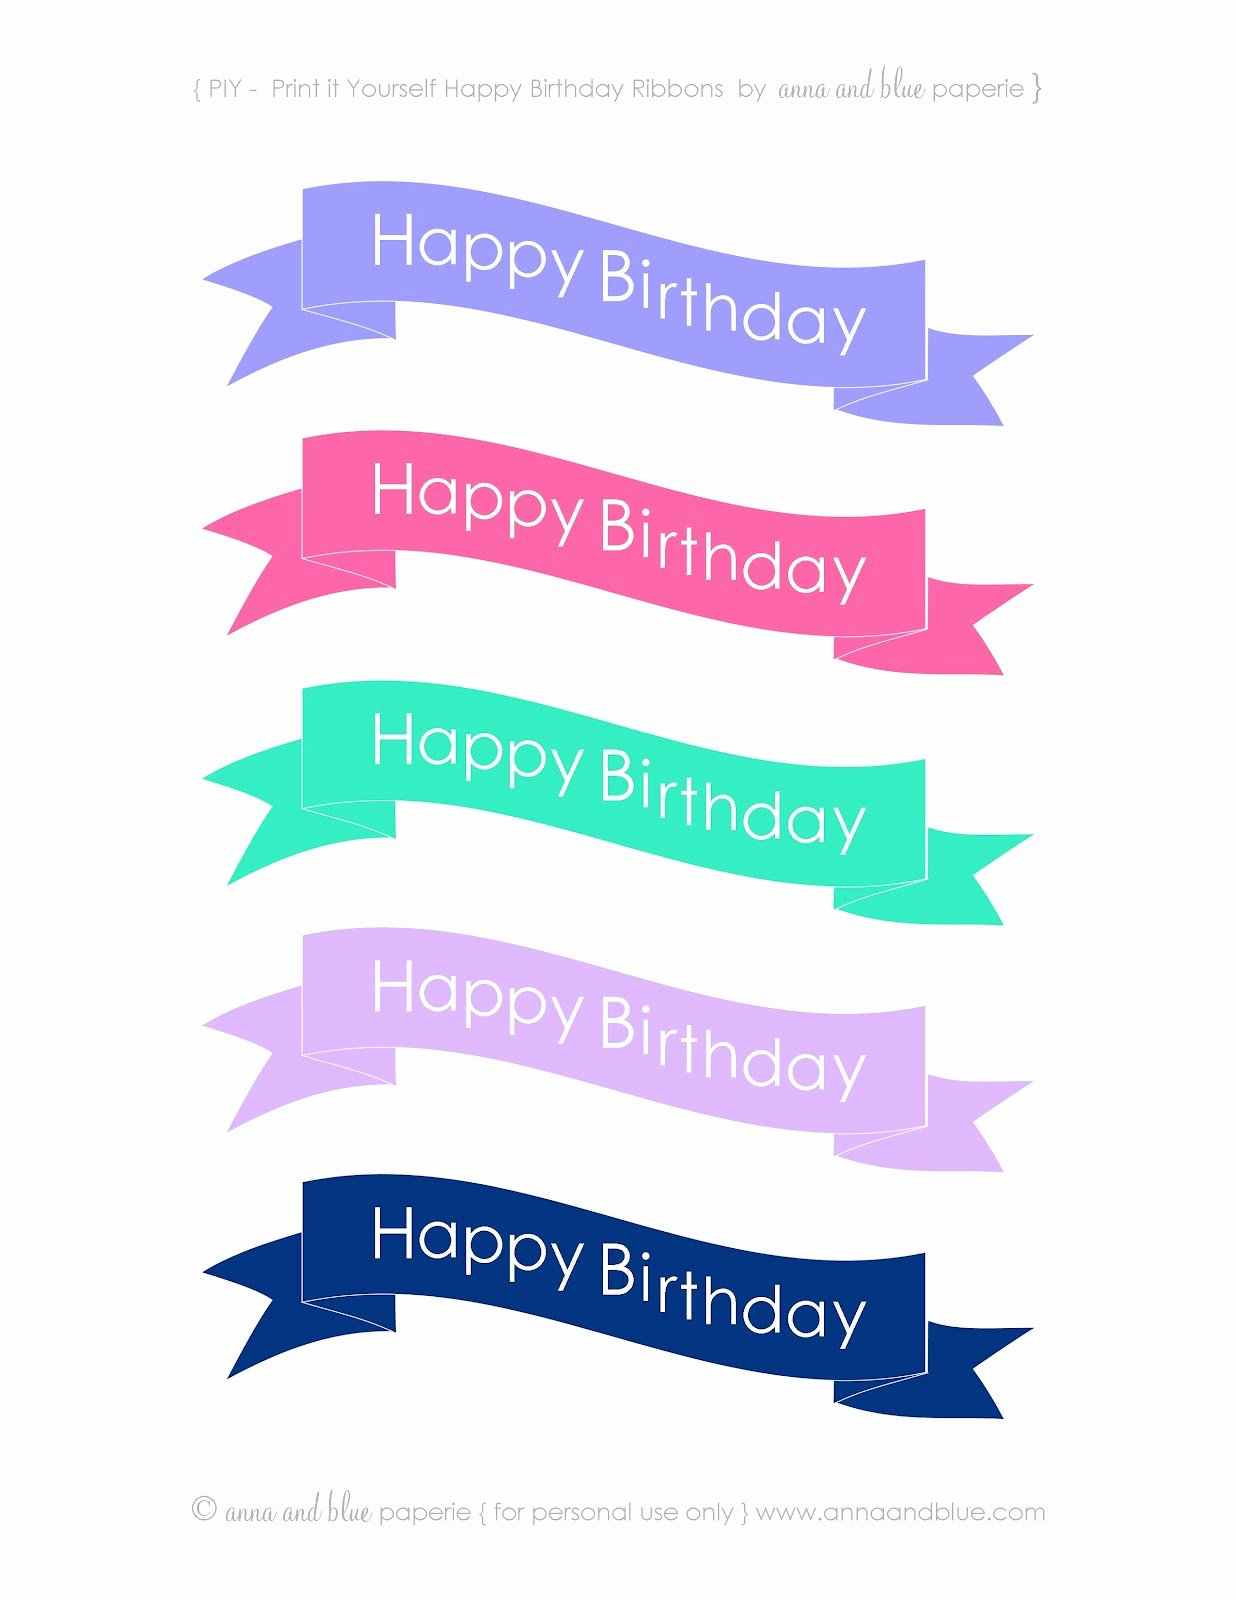 Printable Happy Birthday Banners Lovely Anna and Blue Paperie Free Printable Happy Birthday